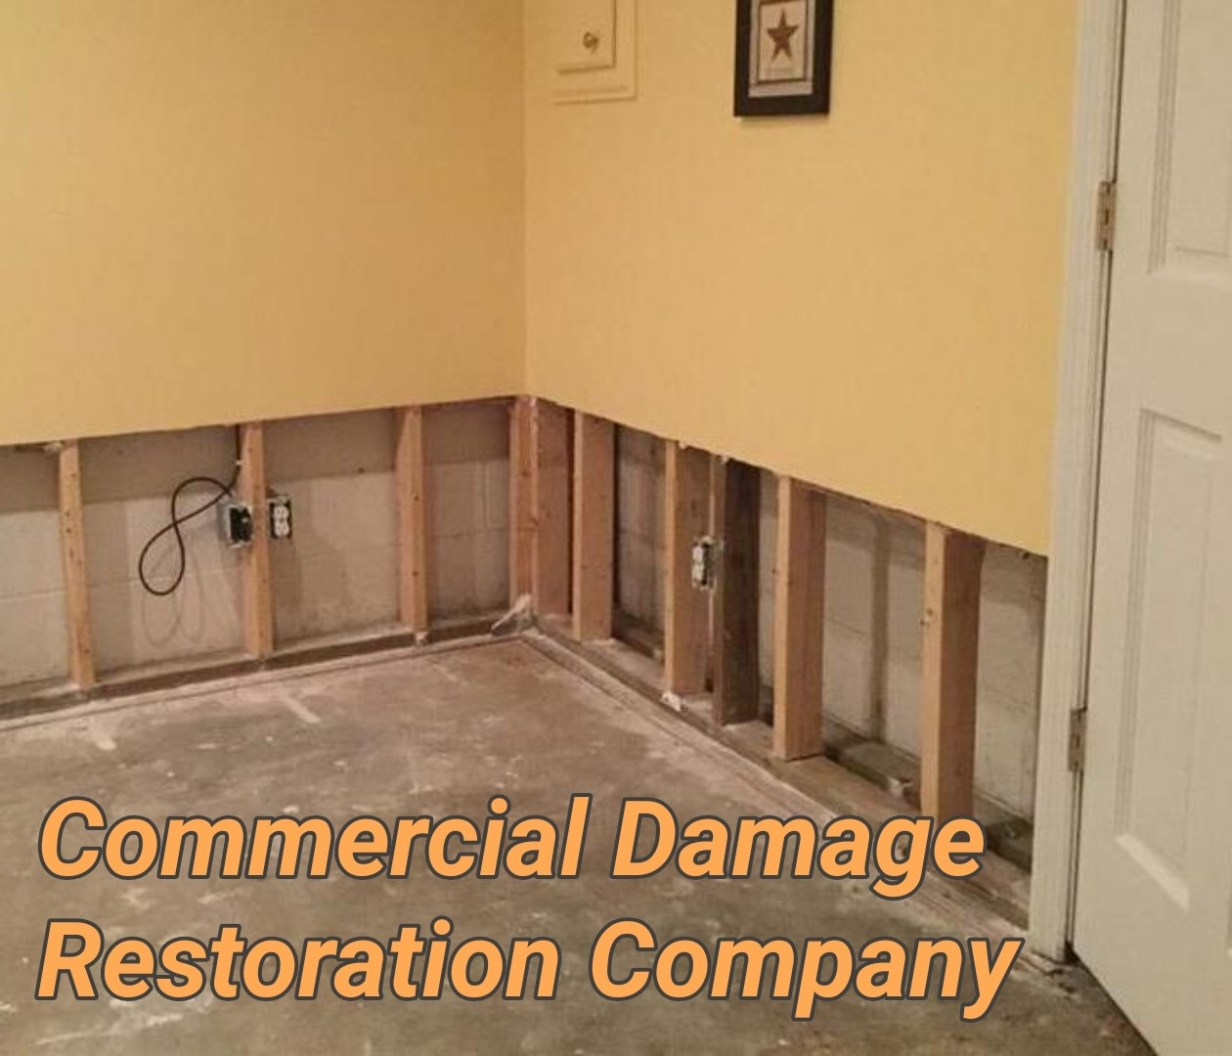 Commercial Damage Restoration Company